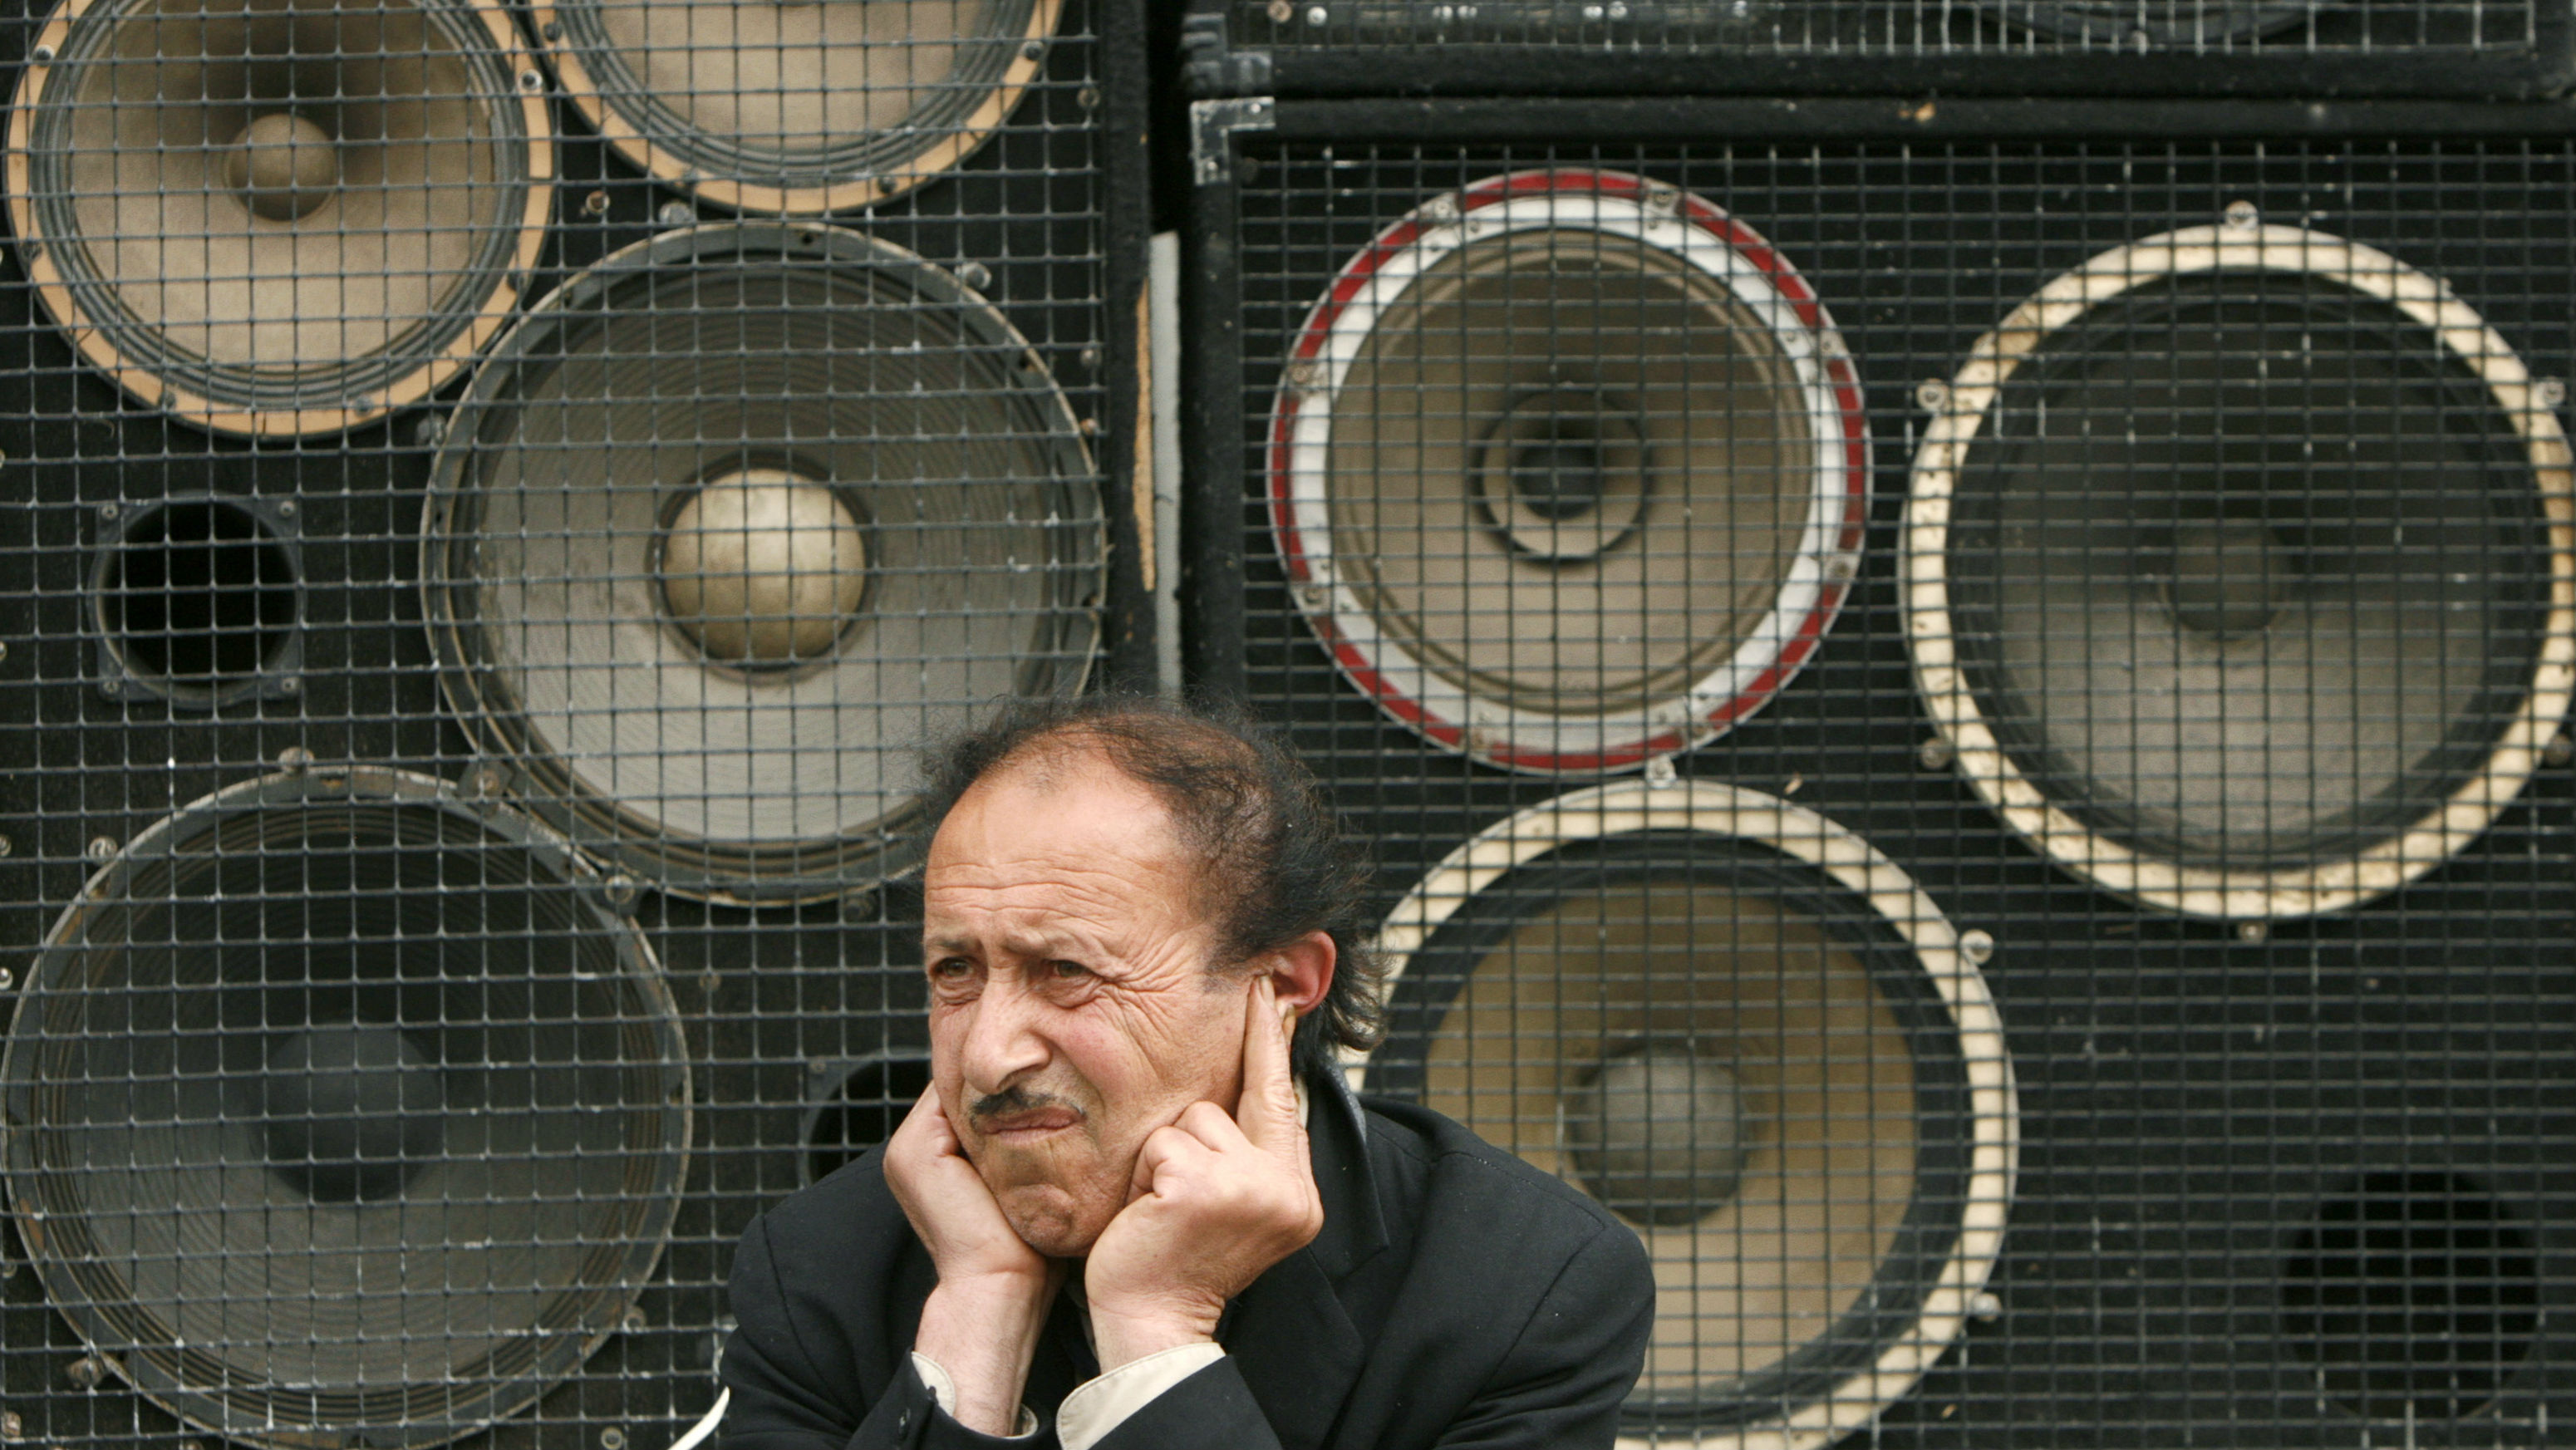 A man protects his ears as he sits in front of loud speakers during an opposition rally in central Yerevan May 13, 2007. Pro-presidential parties have won a large majority in Armenia's parliamentary elections, the country's election commission said on Sunday, a vote Western monitors described as a vast democratic improvement. REUTERS/David Mdzinarishvili (ARMENIA)